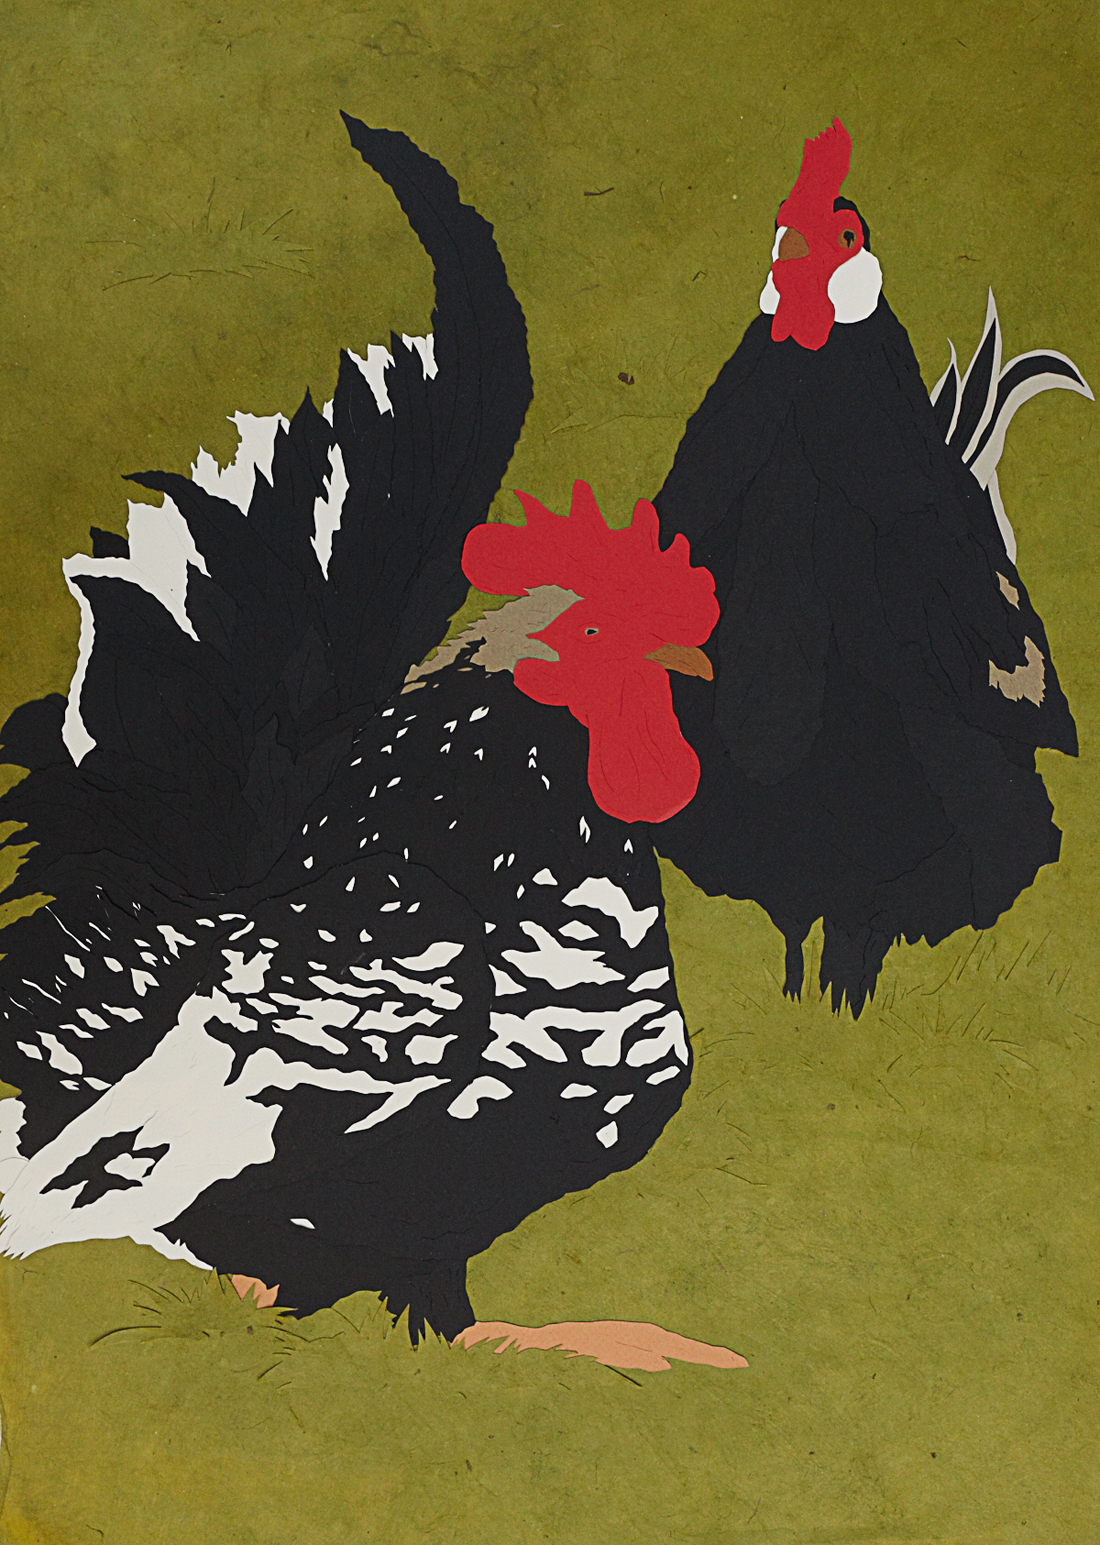 2013_TCP_Resident_Ashley_L_Schick_On_The_Farm_Series-Meaning_to_Ask- 2013-hand-cut-paper-and-adhesive-22-34x17.jpg